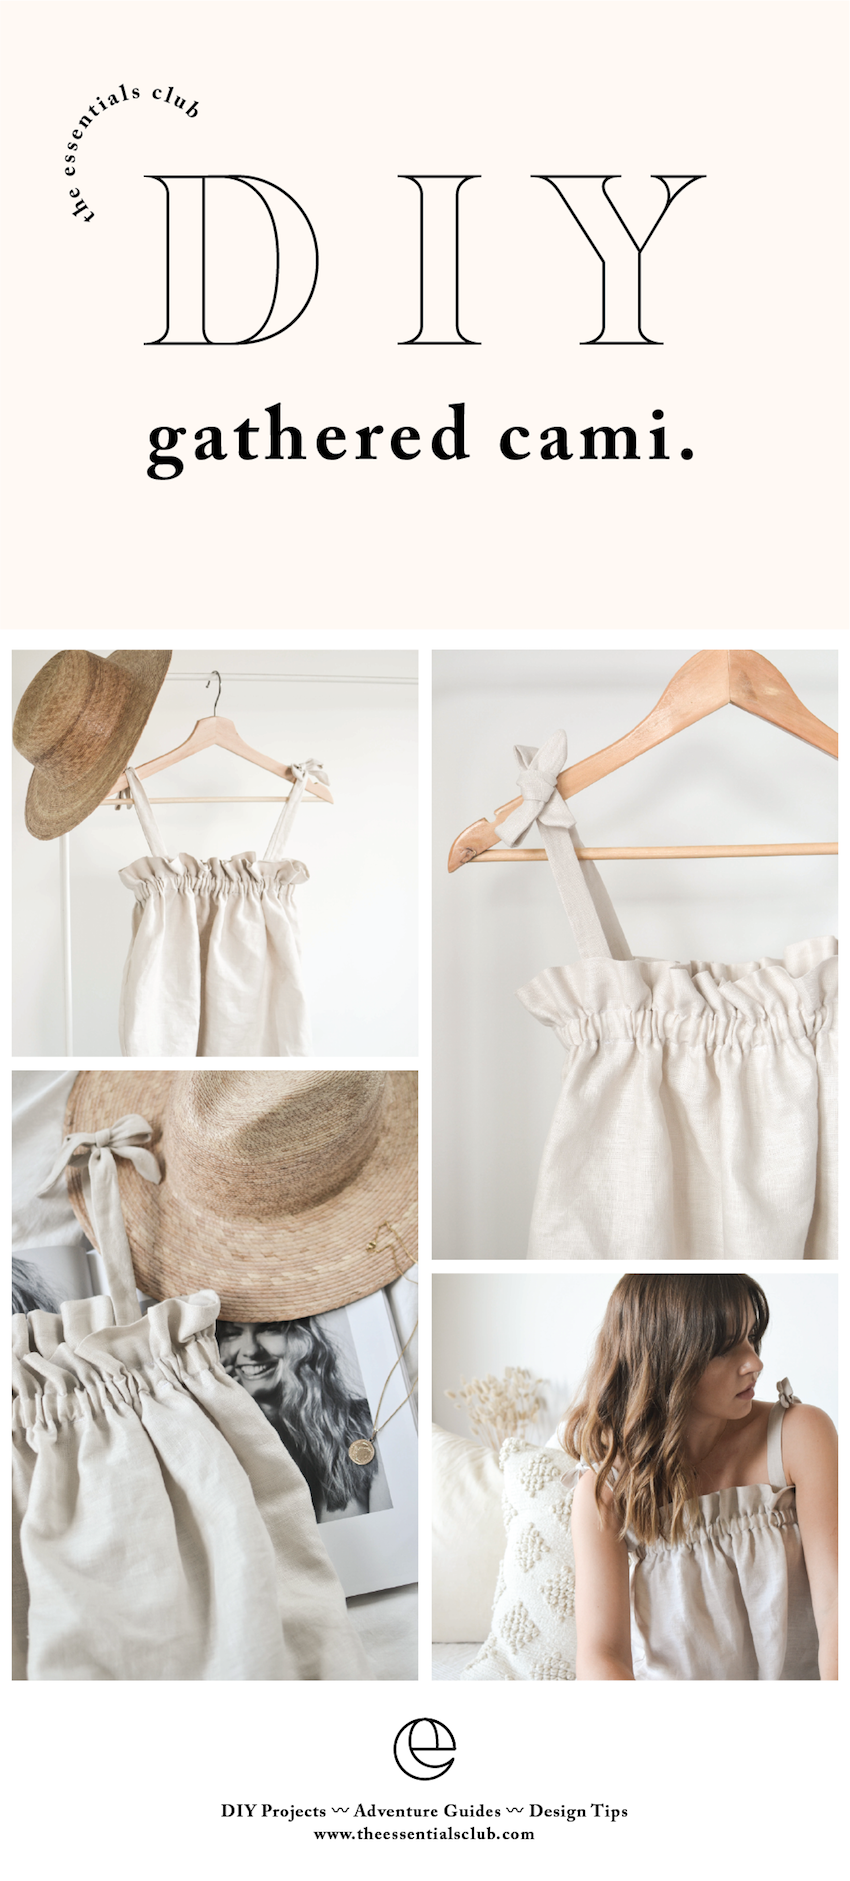 15 diy clothes design creative ideas